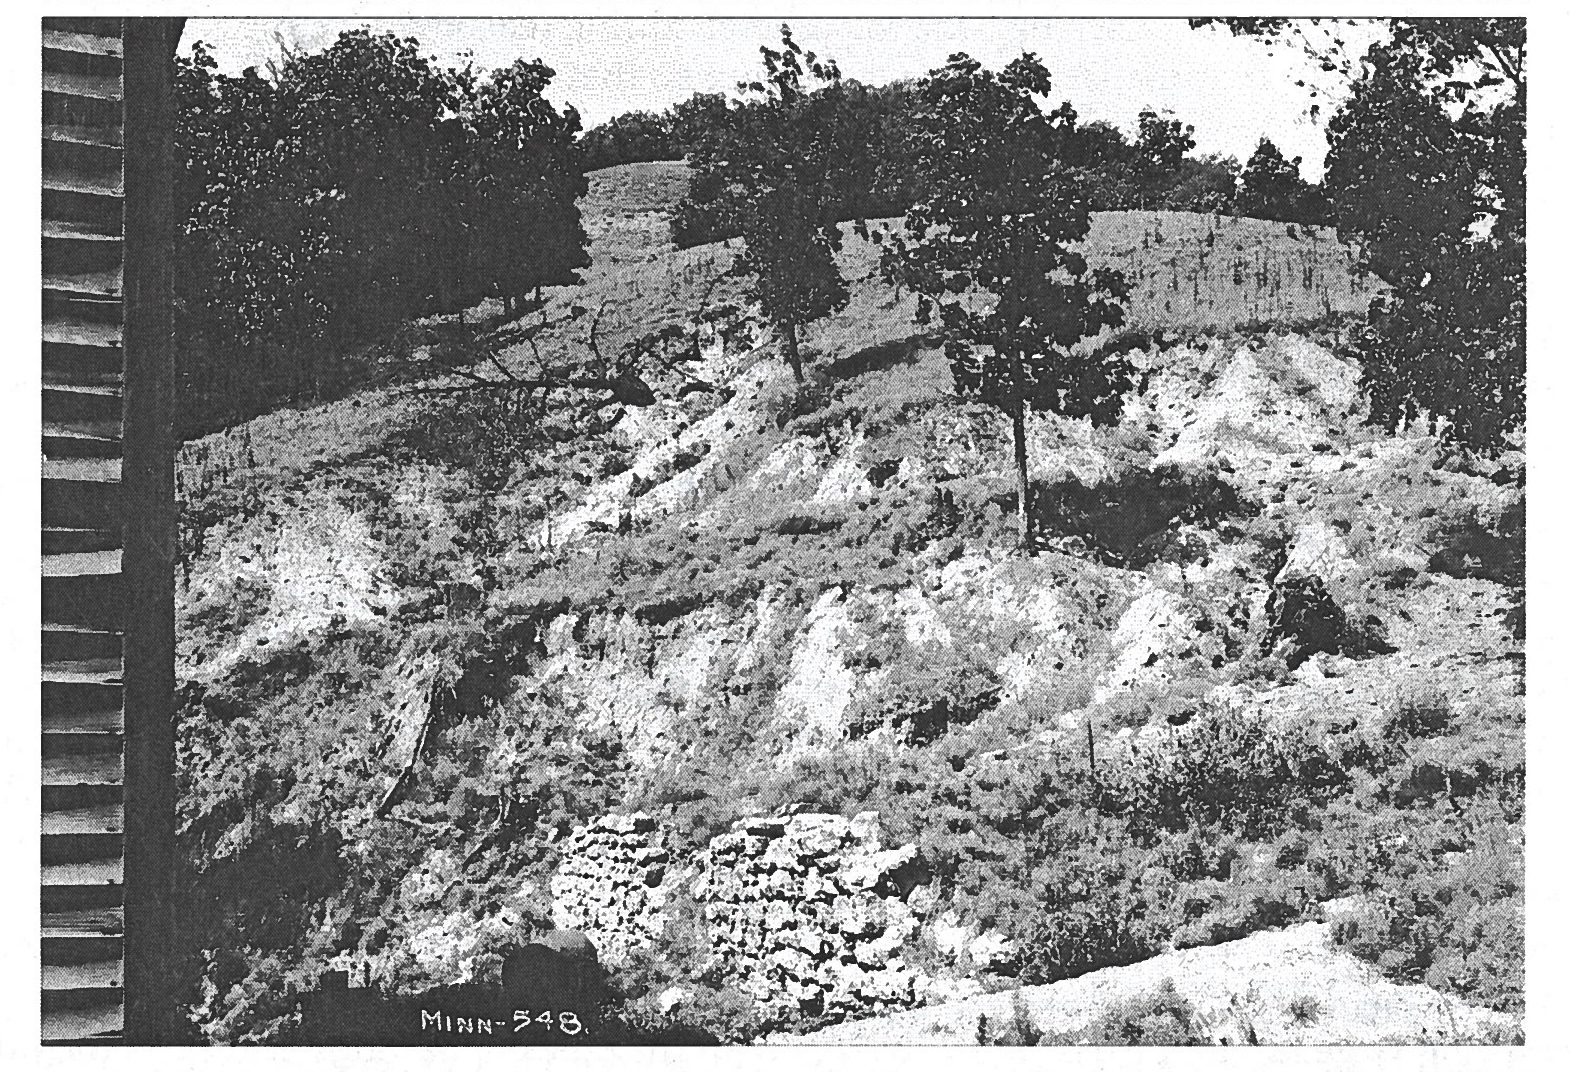 Erosion was so severe this stone wall was partially buried. Image courtesy of Stanley W. Trimble.